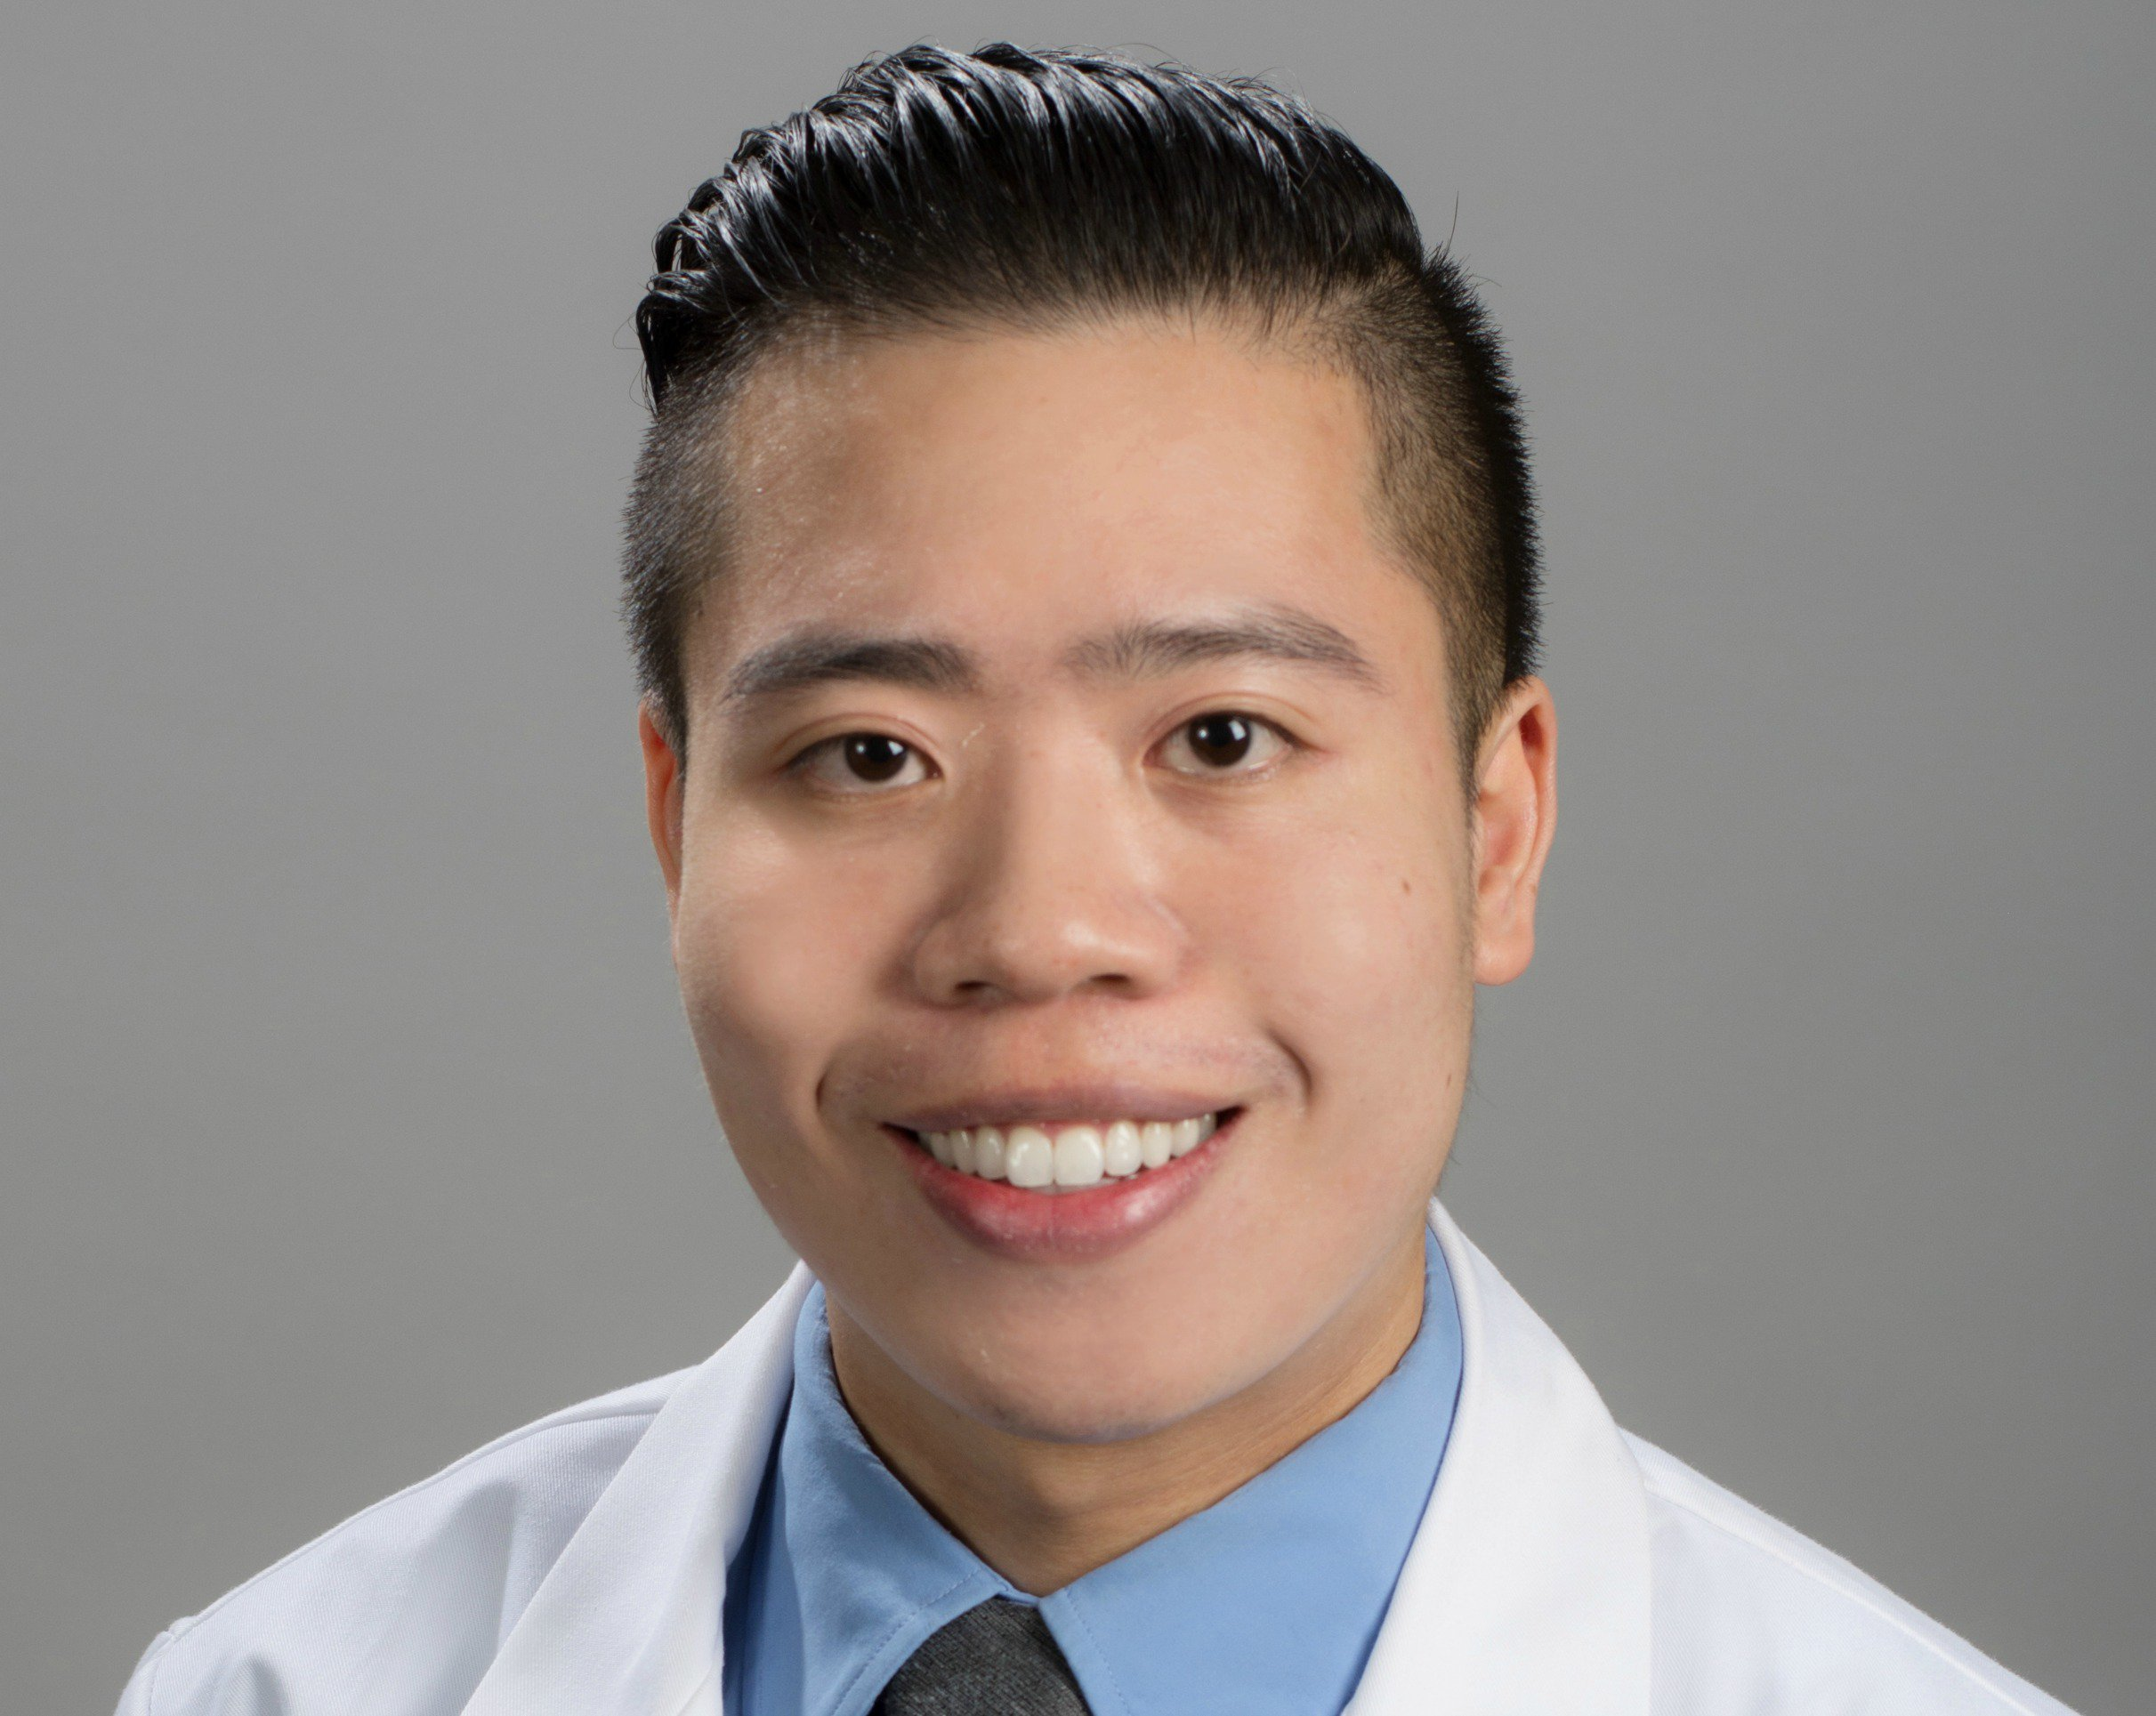 Christian Brian Nguyen is a PA at CoxHealth Center Marshfield.